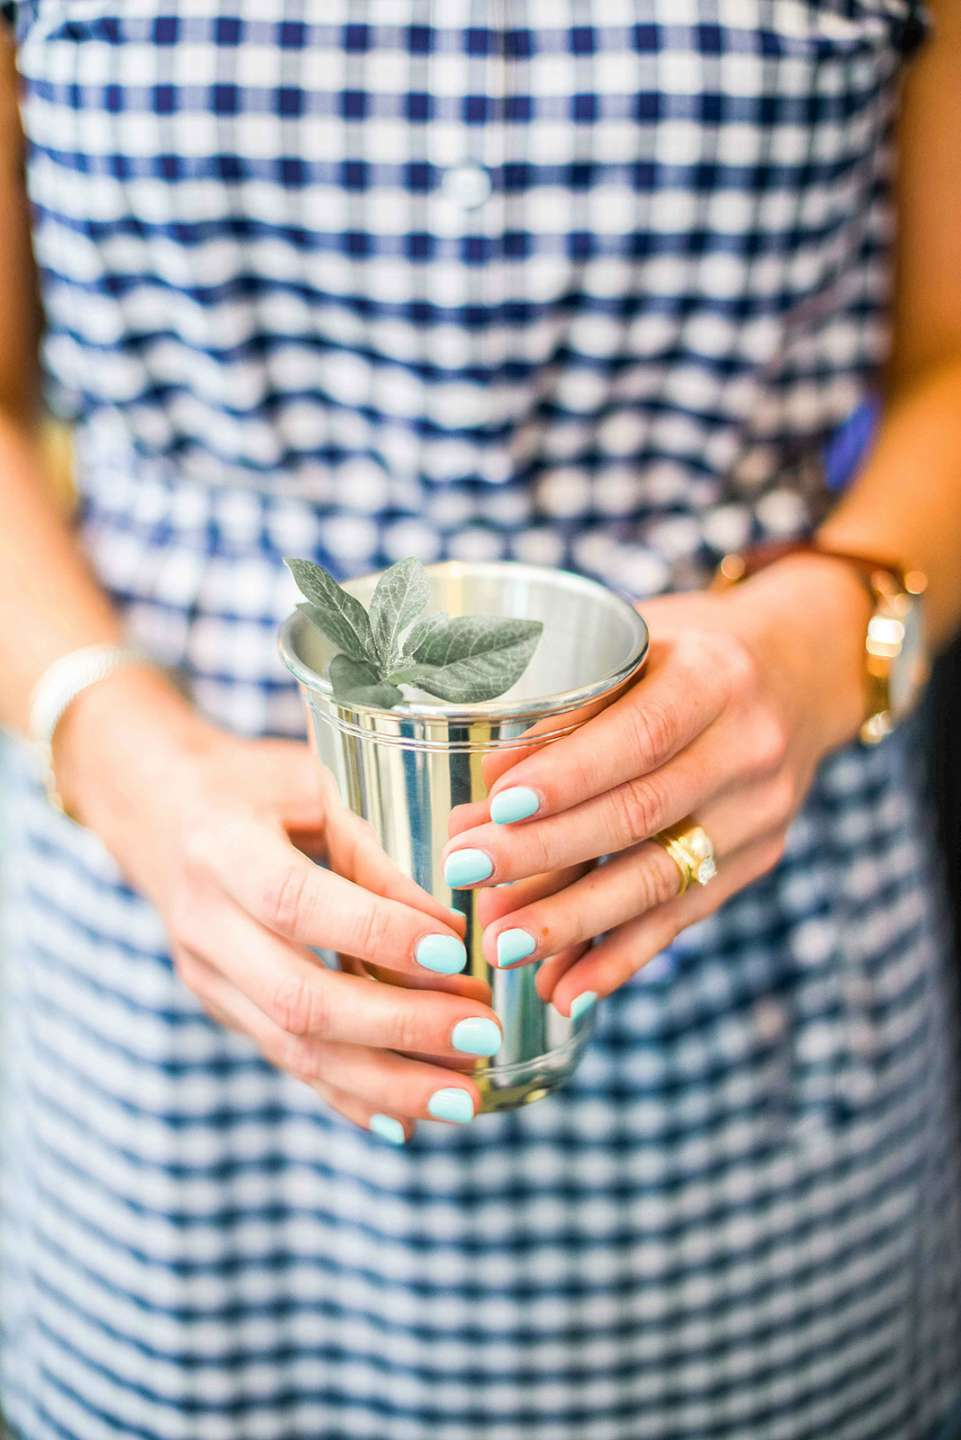 9 Best Nail Polish Colors for Warm Weather - I'm Fixin' To - @mbg0112